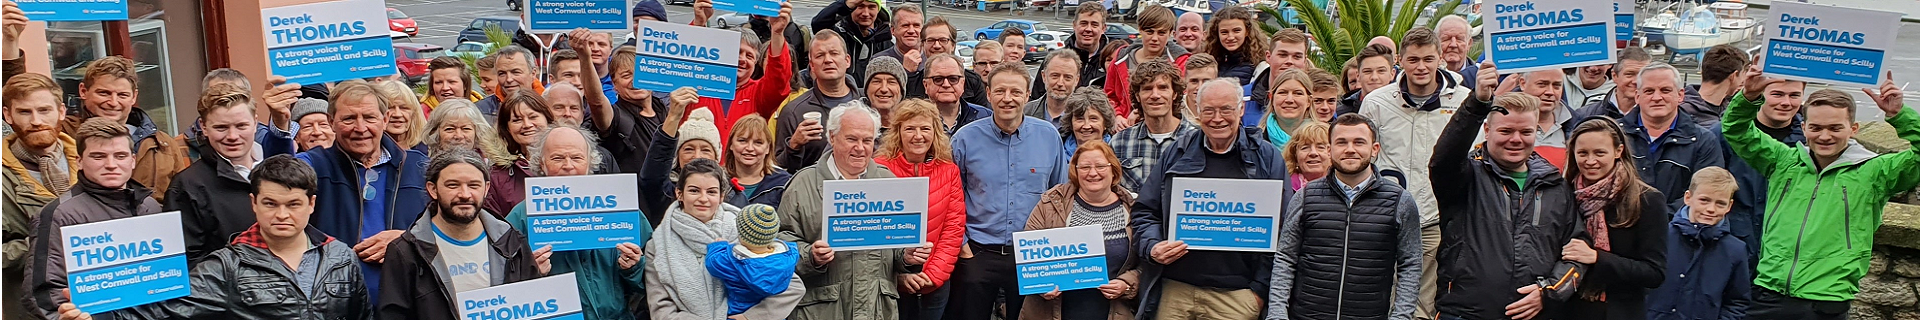 Banner image for Derek Thomas MP